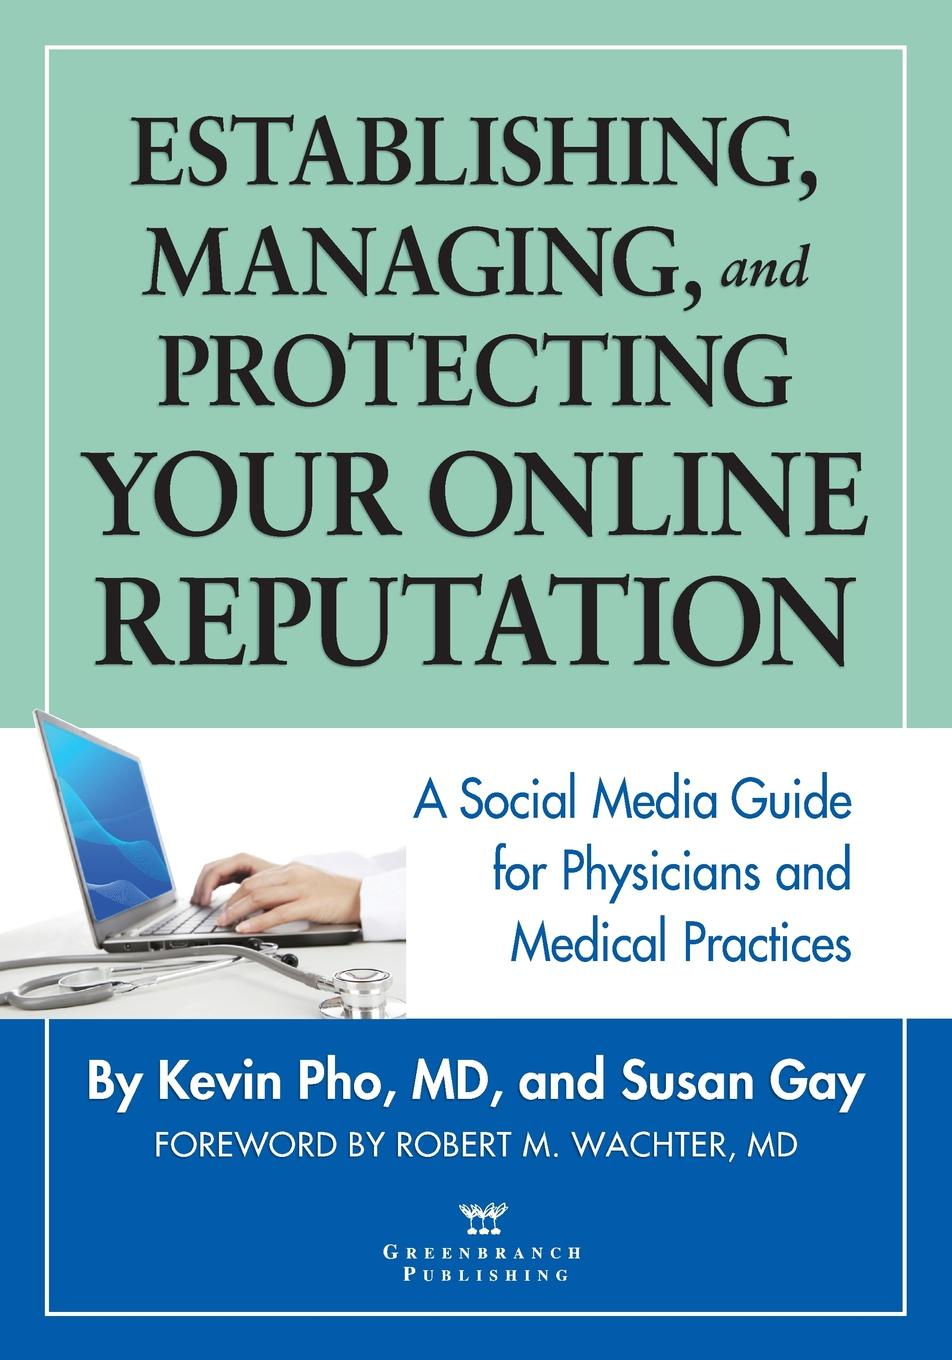 Kevin Pho, Susan Gay Establishing, Managing and Protecting Your Online Reputation. A Social Media Guide for Physicians and Medical Practices beth kanter 101 social media tactics for nonprofits a field guide